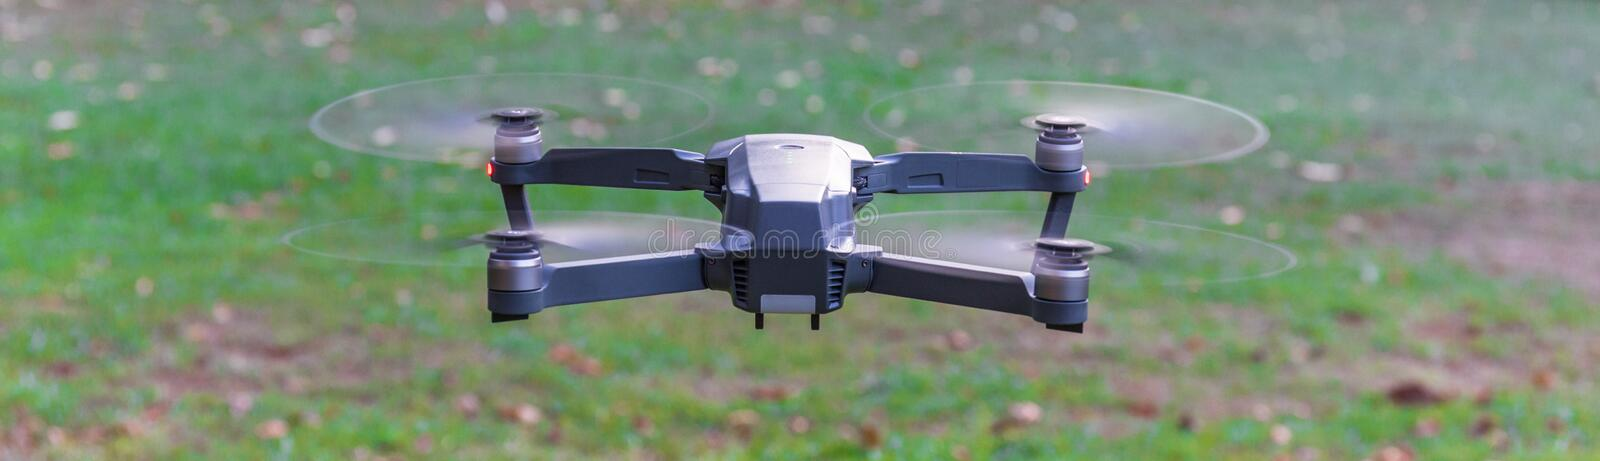 Drone on a flying above grass royalty free stock images